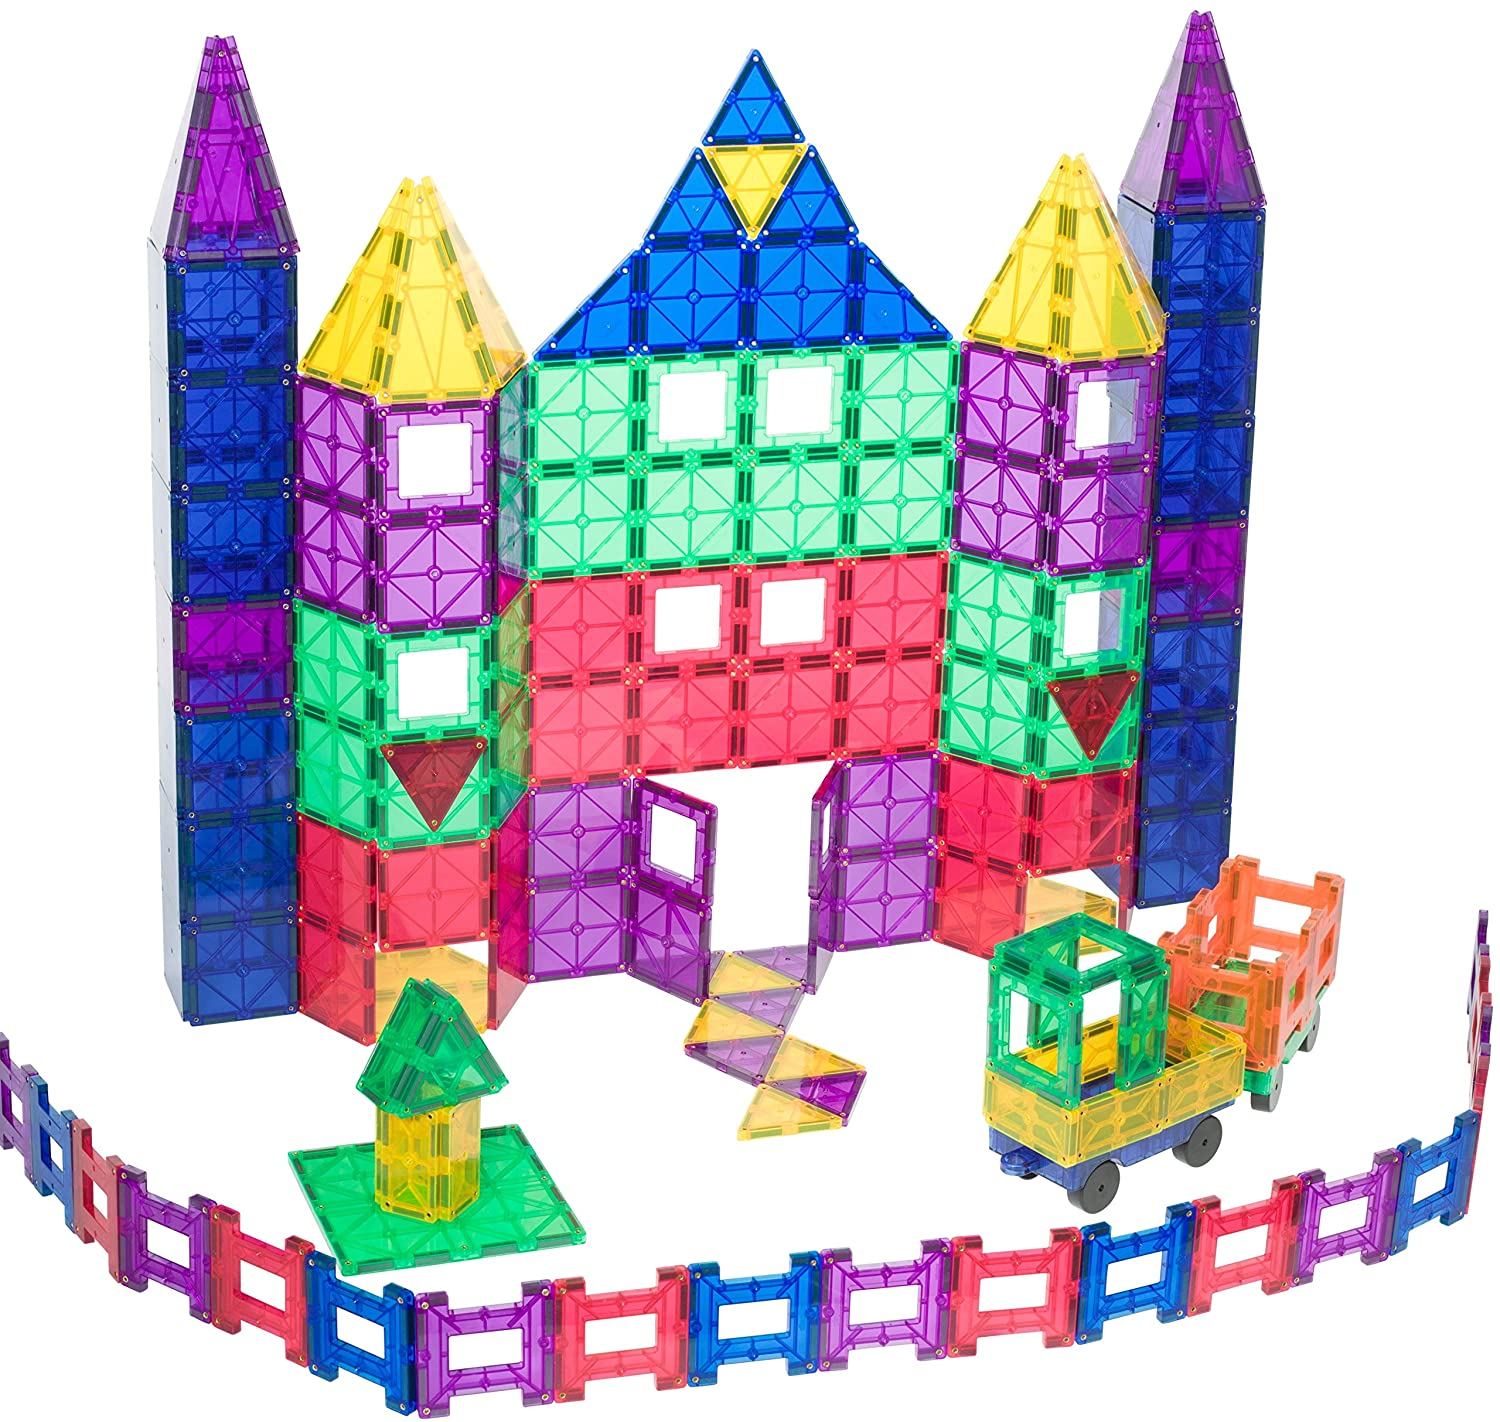 ... + 18 Piece Set: Now With Stronger Magnets, Sturdy, Super Durable With  Vivid Clear Color Tiles. 18 Piece Clickins Accessories To Enhance Your  Creativity: ...